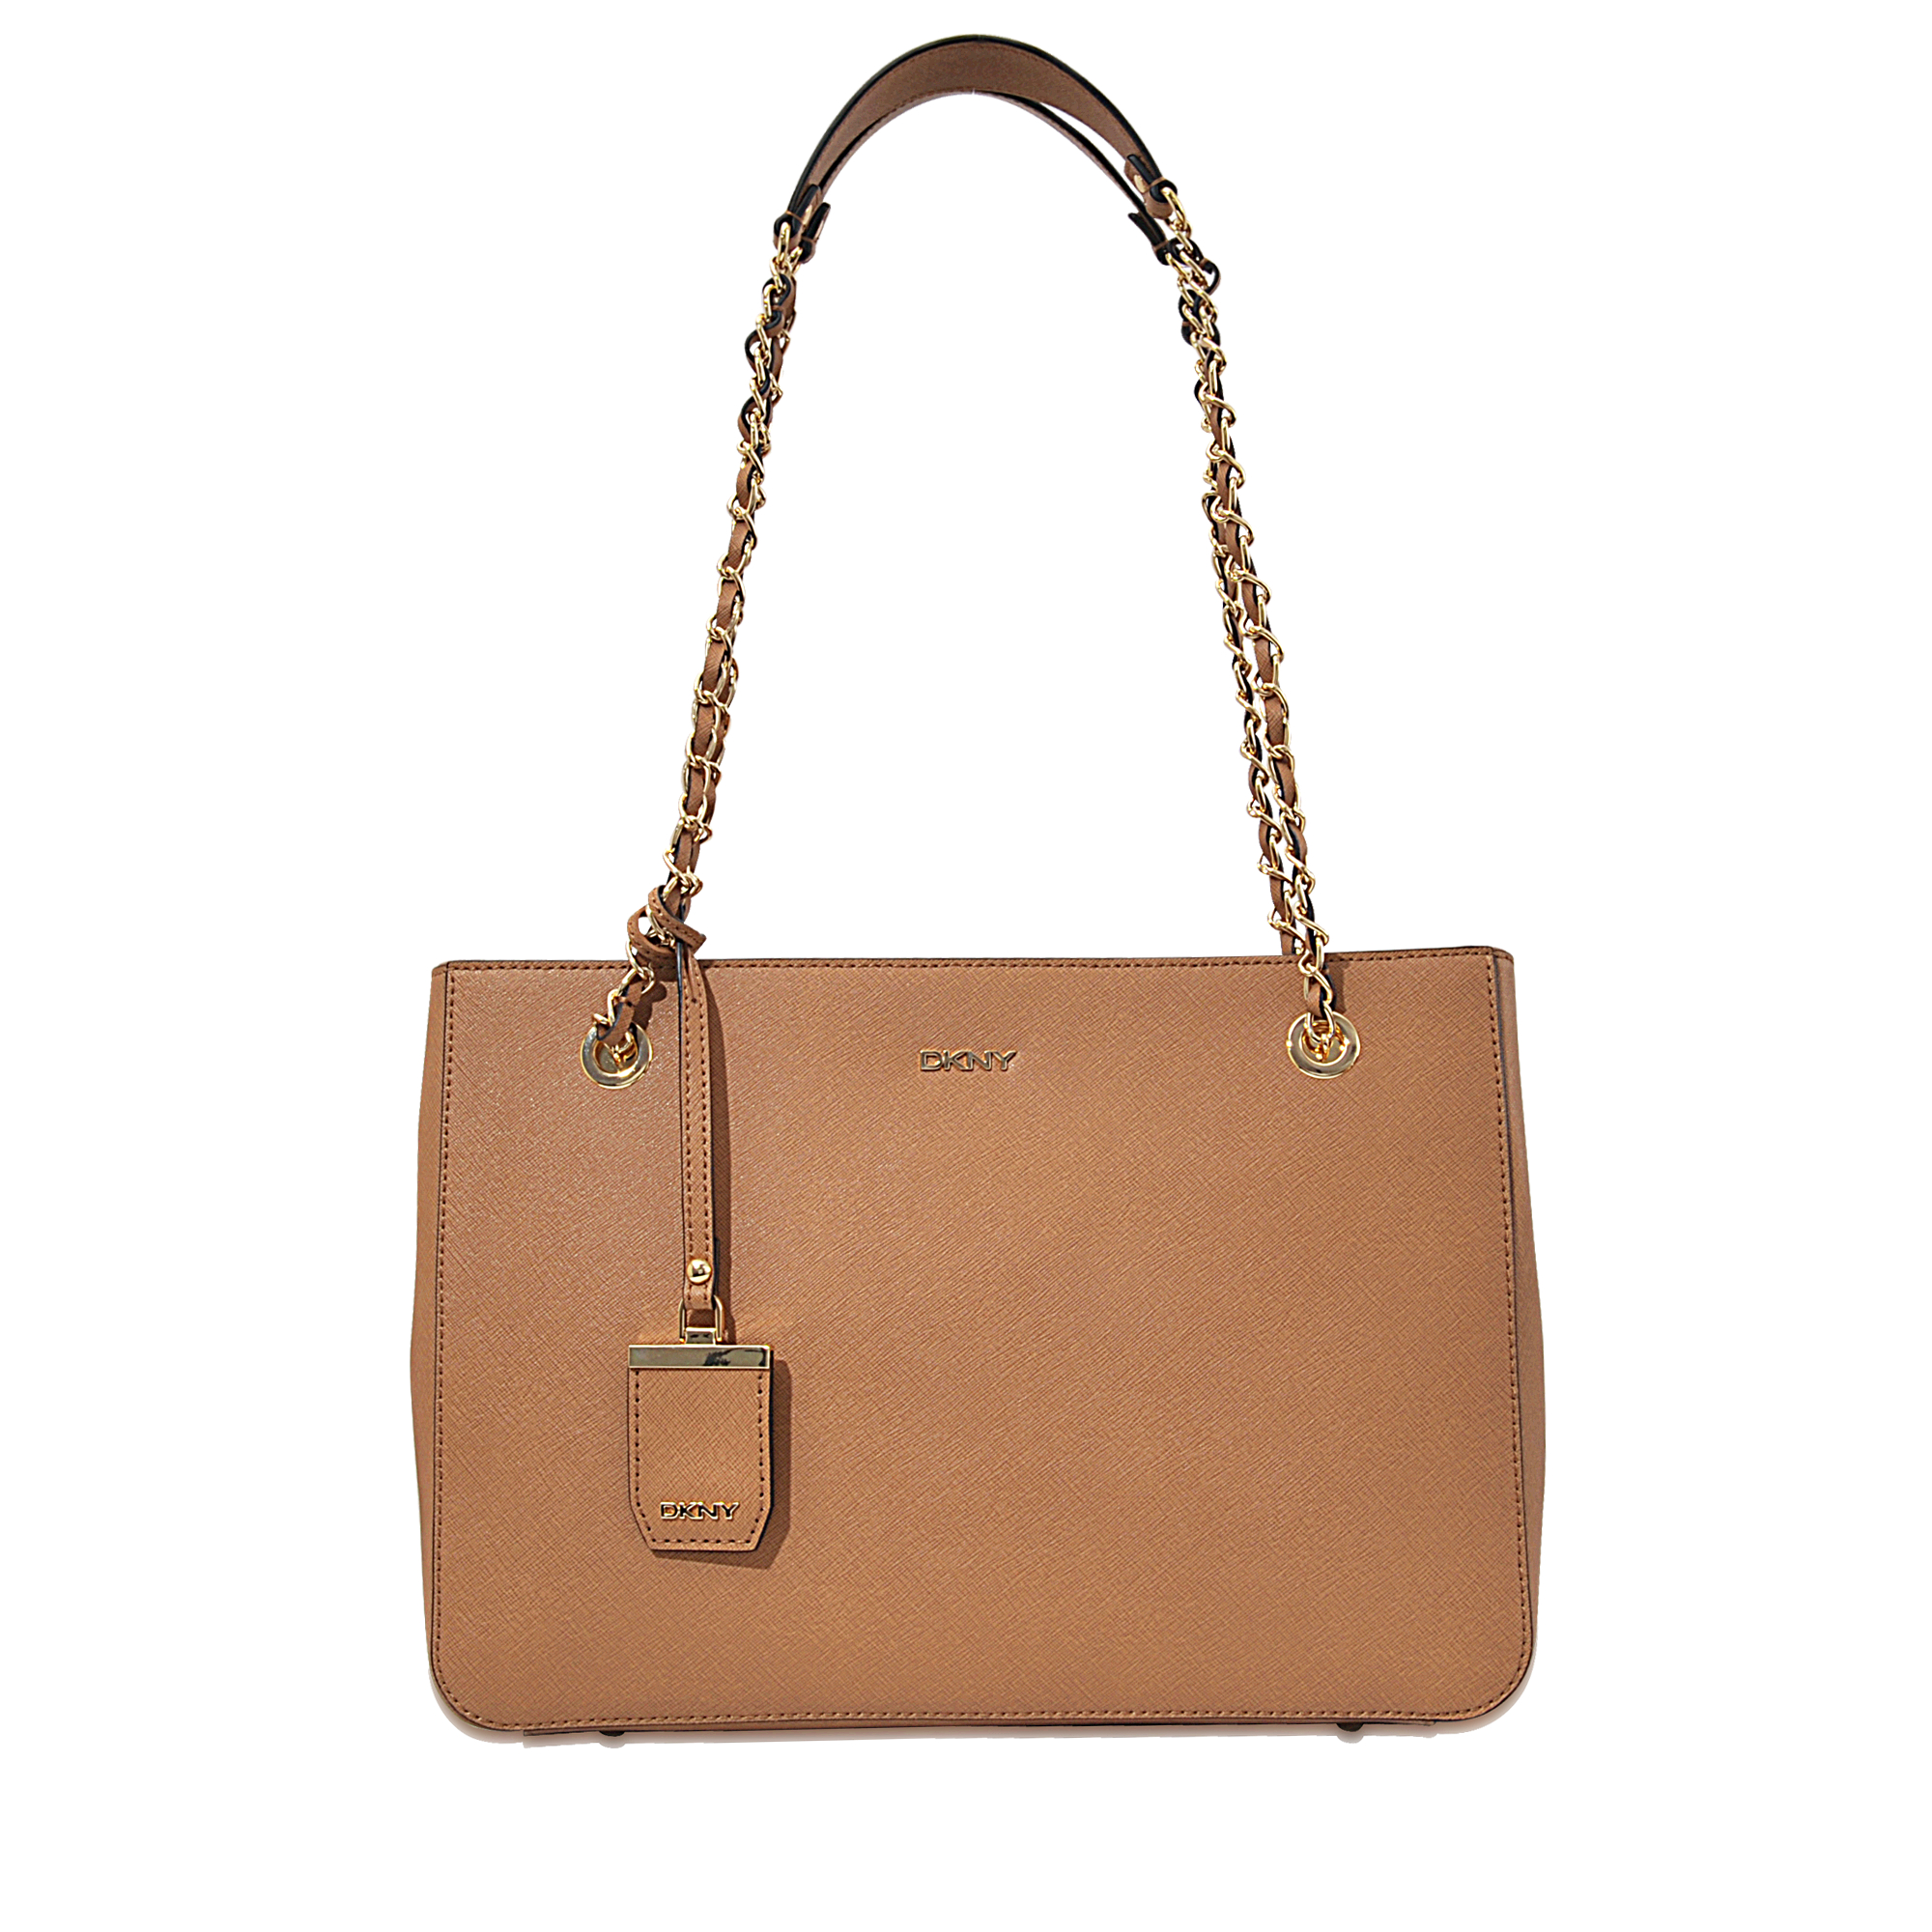 6265b37a1f ... size 40 31f01 8184b Lyst - Dkny Bryant Park Shopper Bag in Brown ...